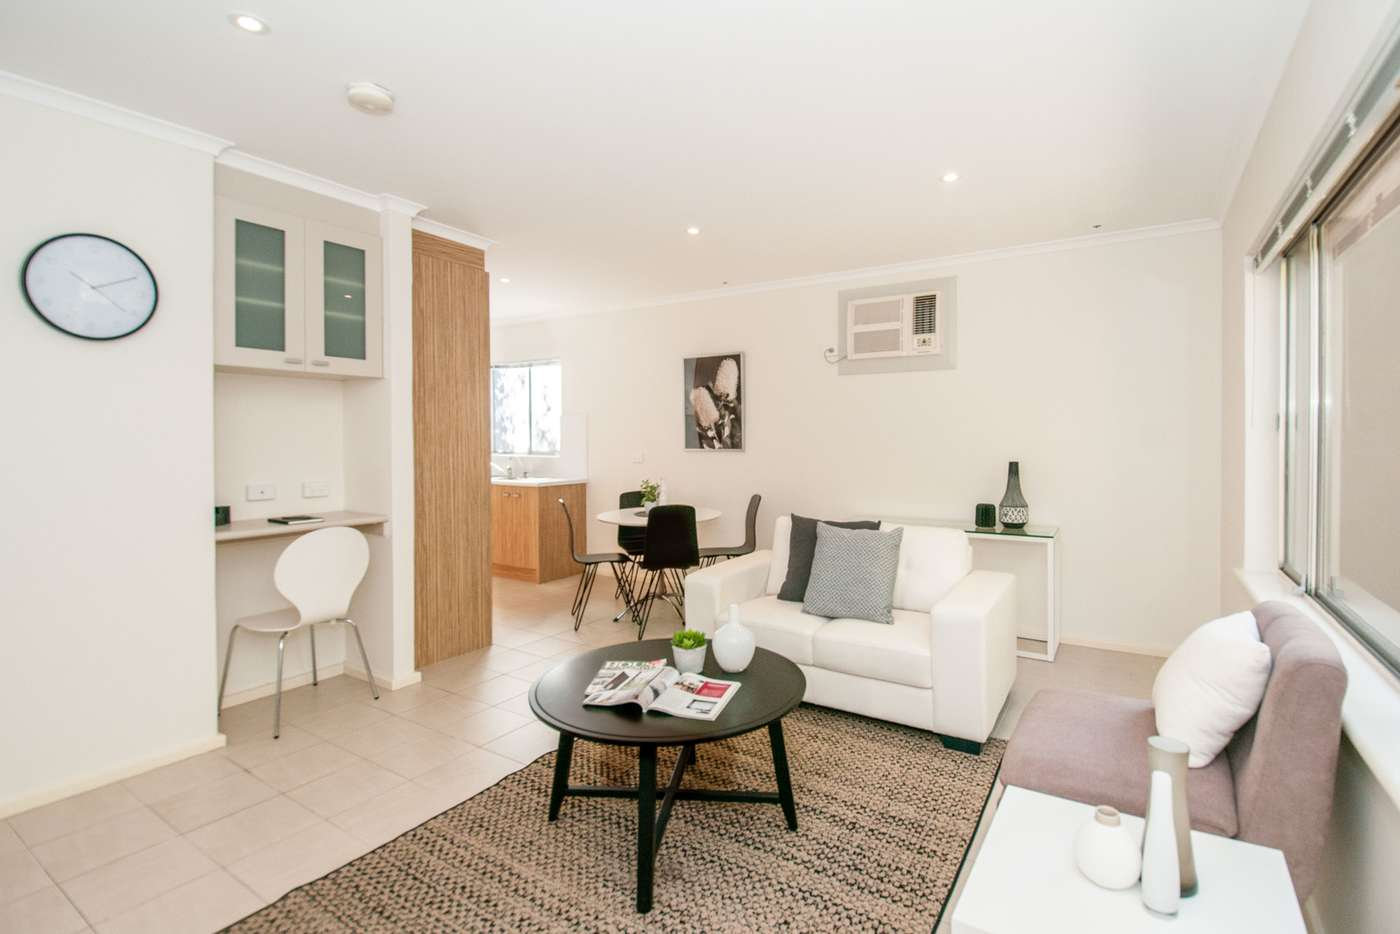 Sixth view of Homely unit listing, 1/30 Bakewell Road, Evandale SA 5069